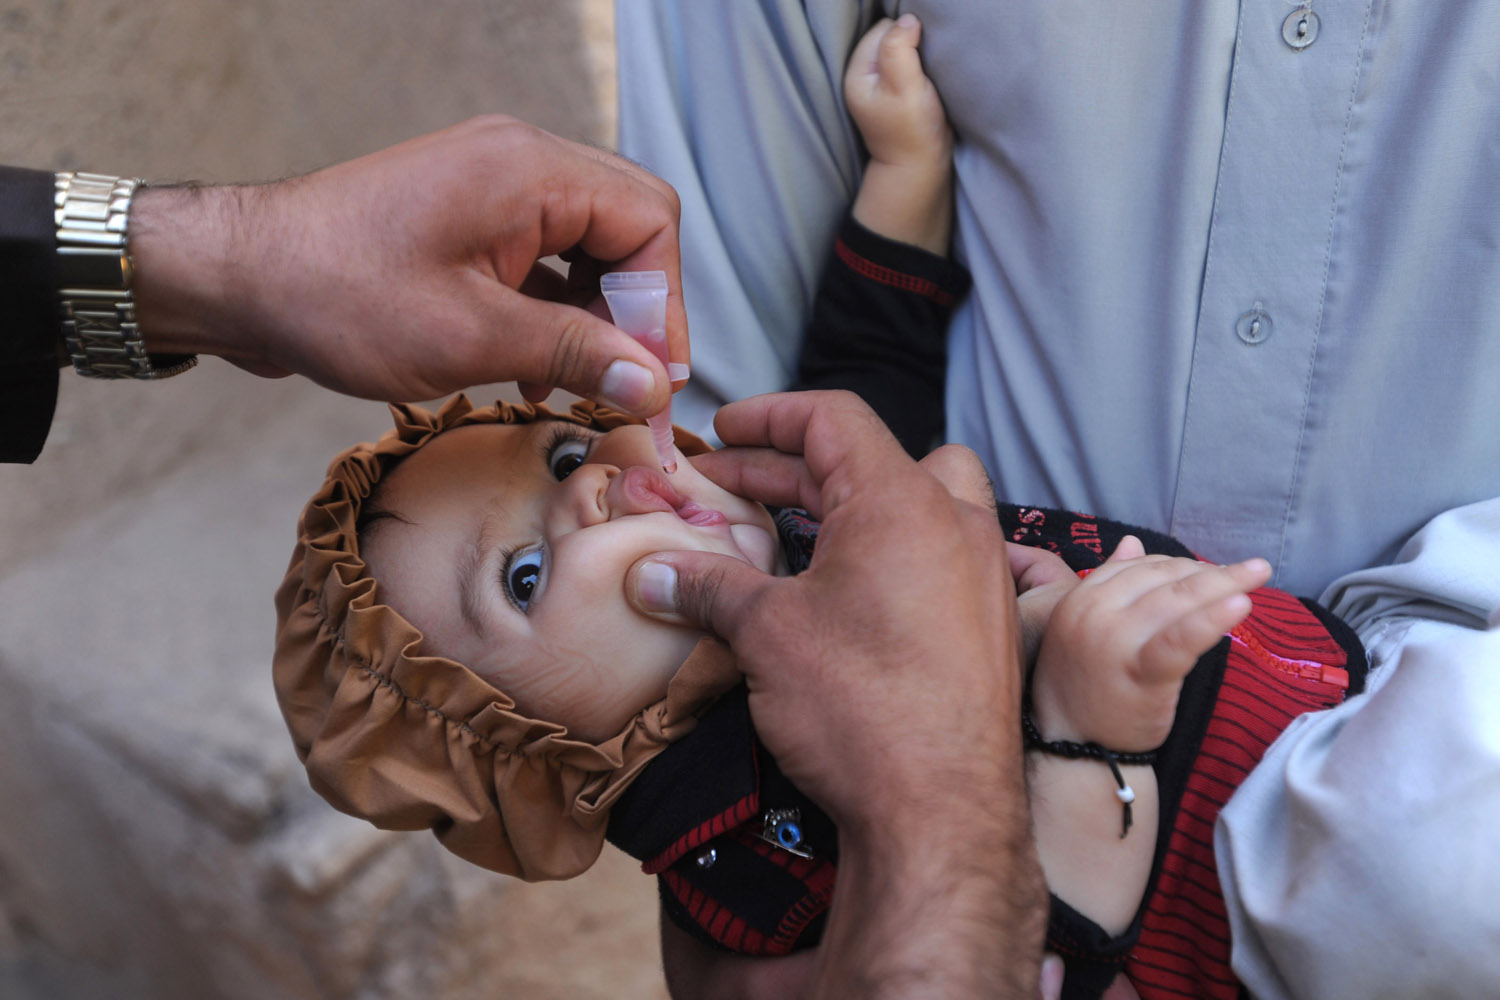 Sept. 18, 2012. An Afghan health worker administers a polio vaccination to a child on the third day of a vaccination campaign in Herat.